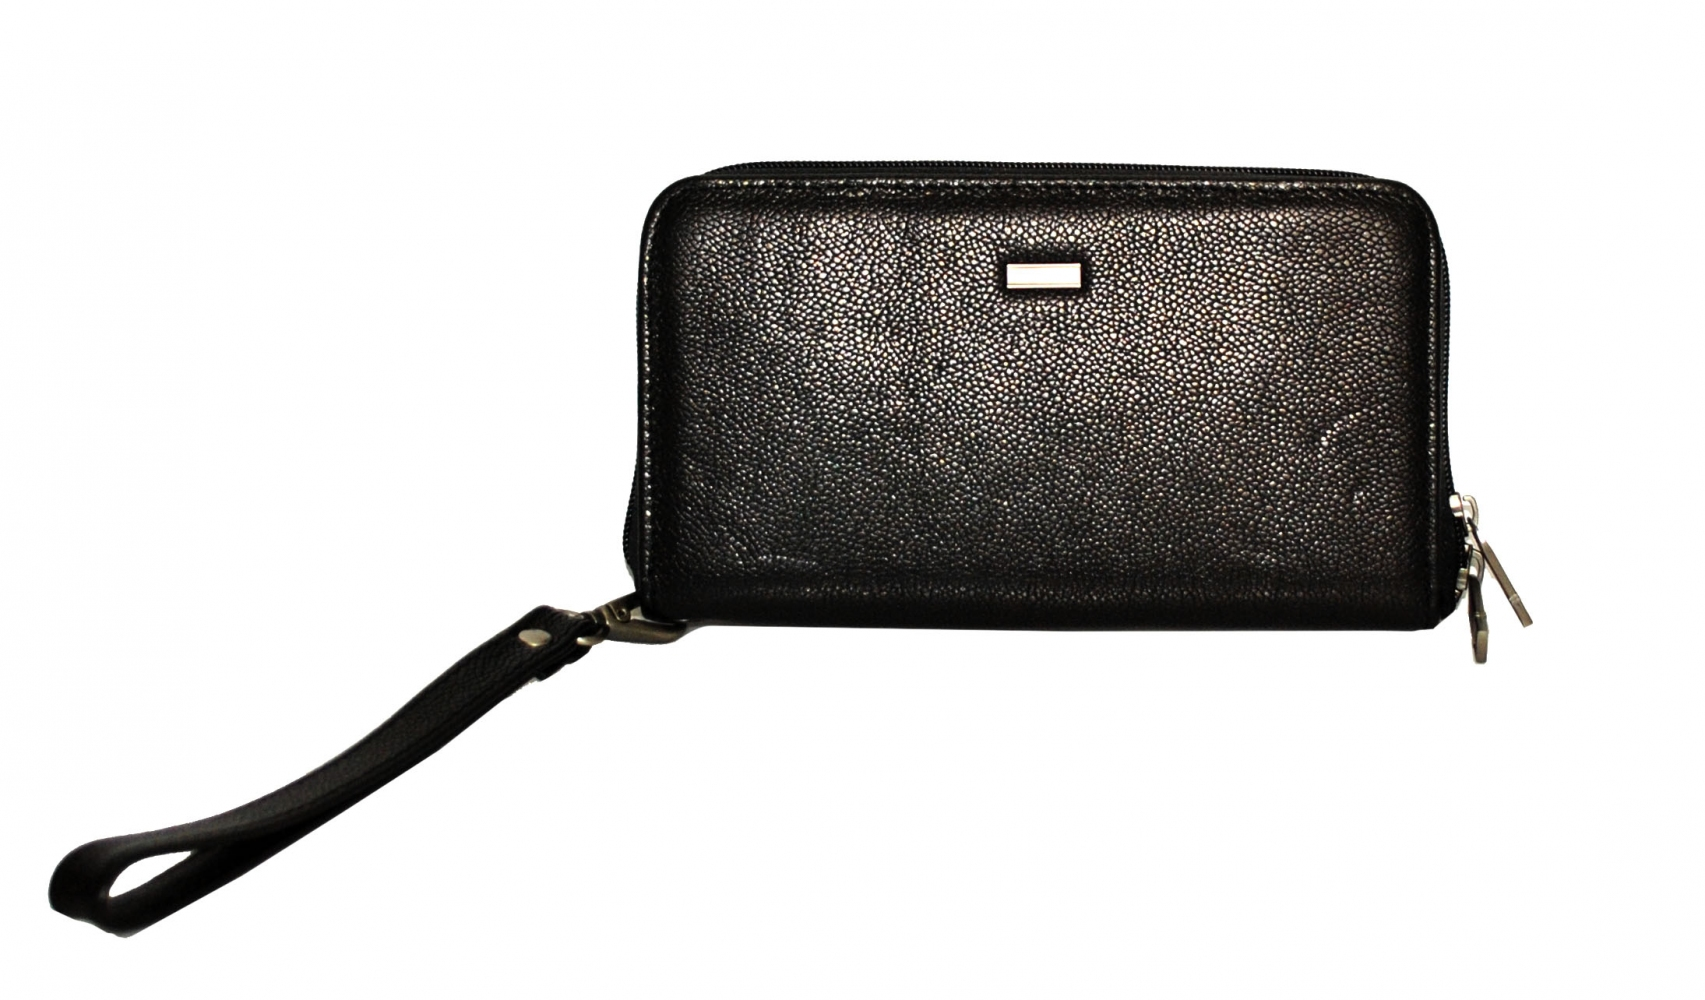 Men's handbag is 4306 black